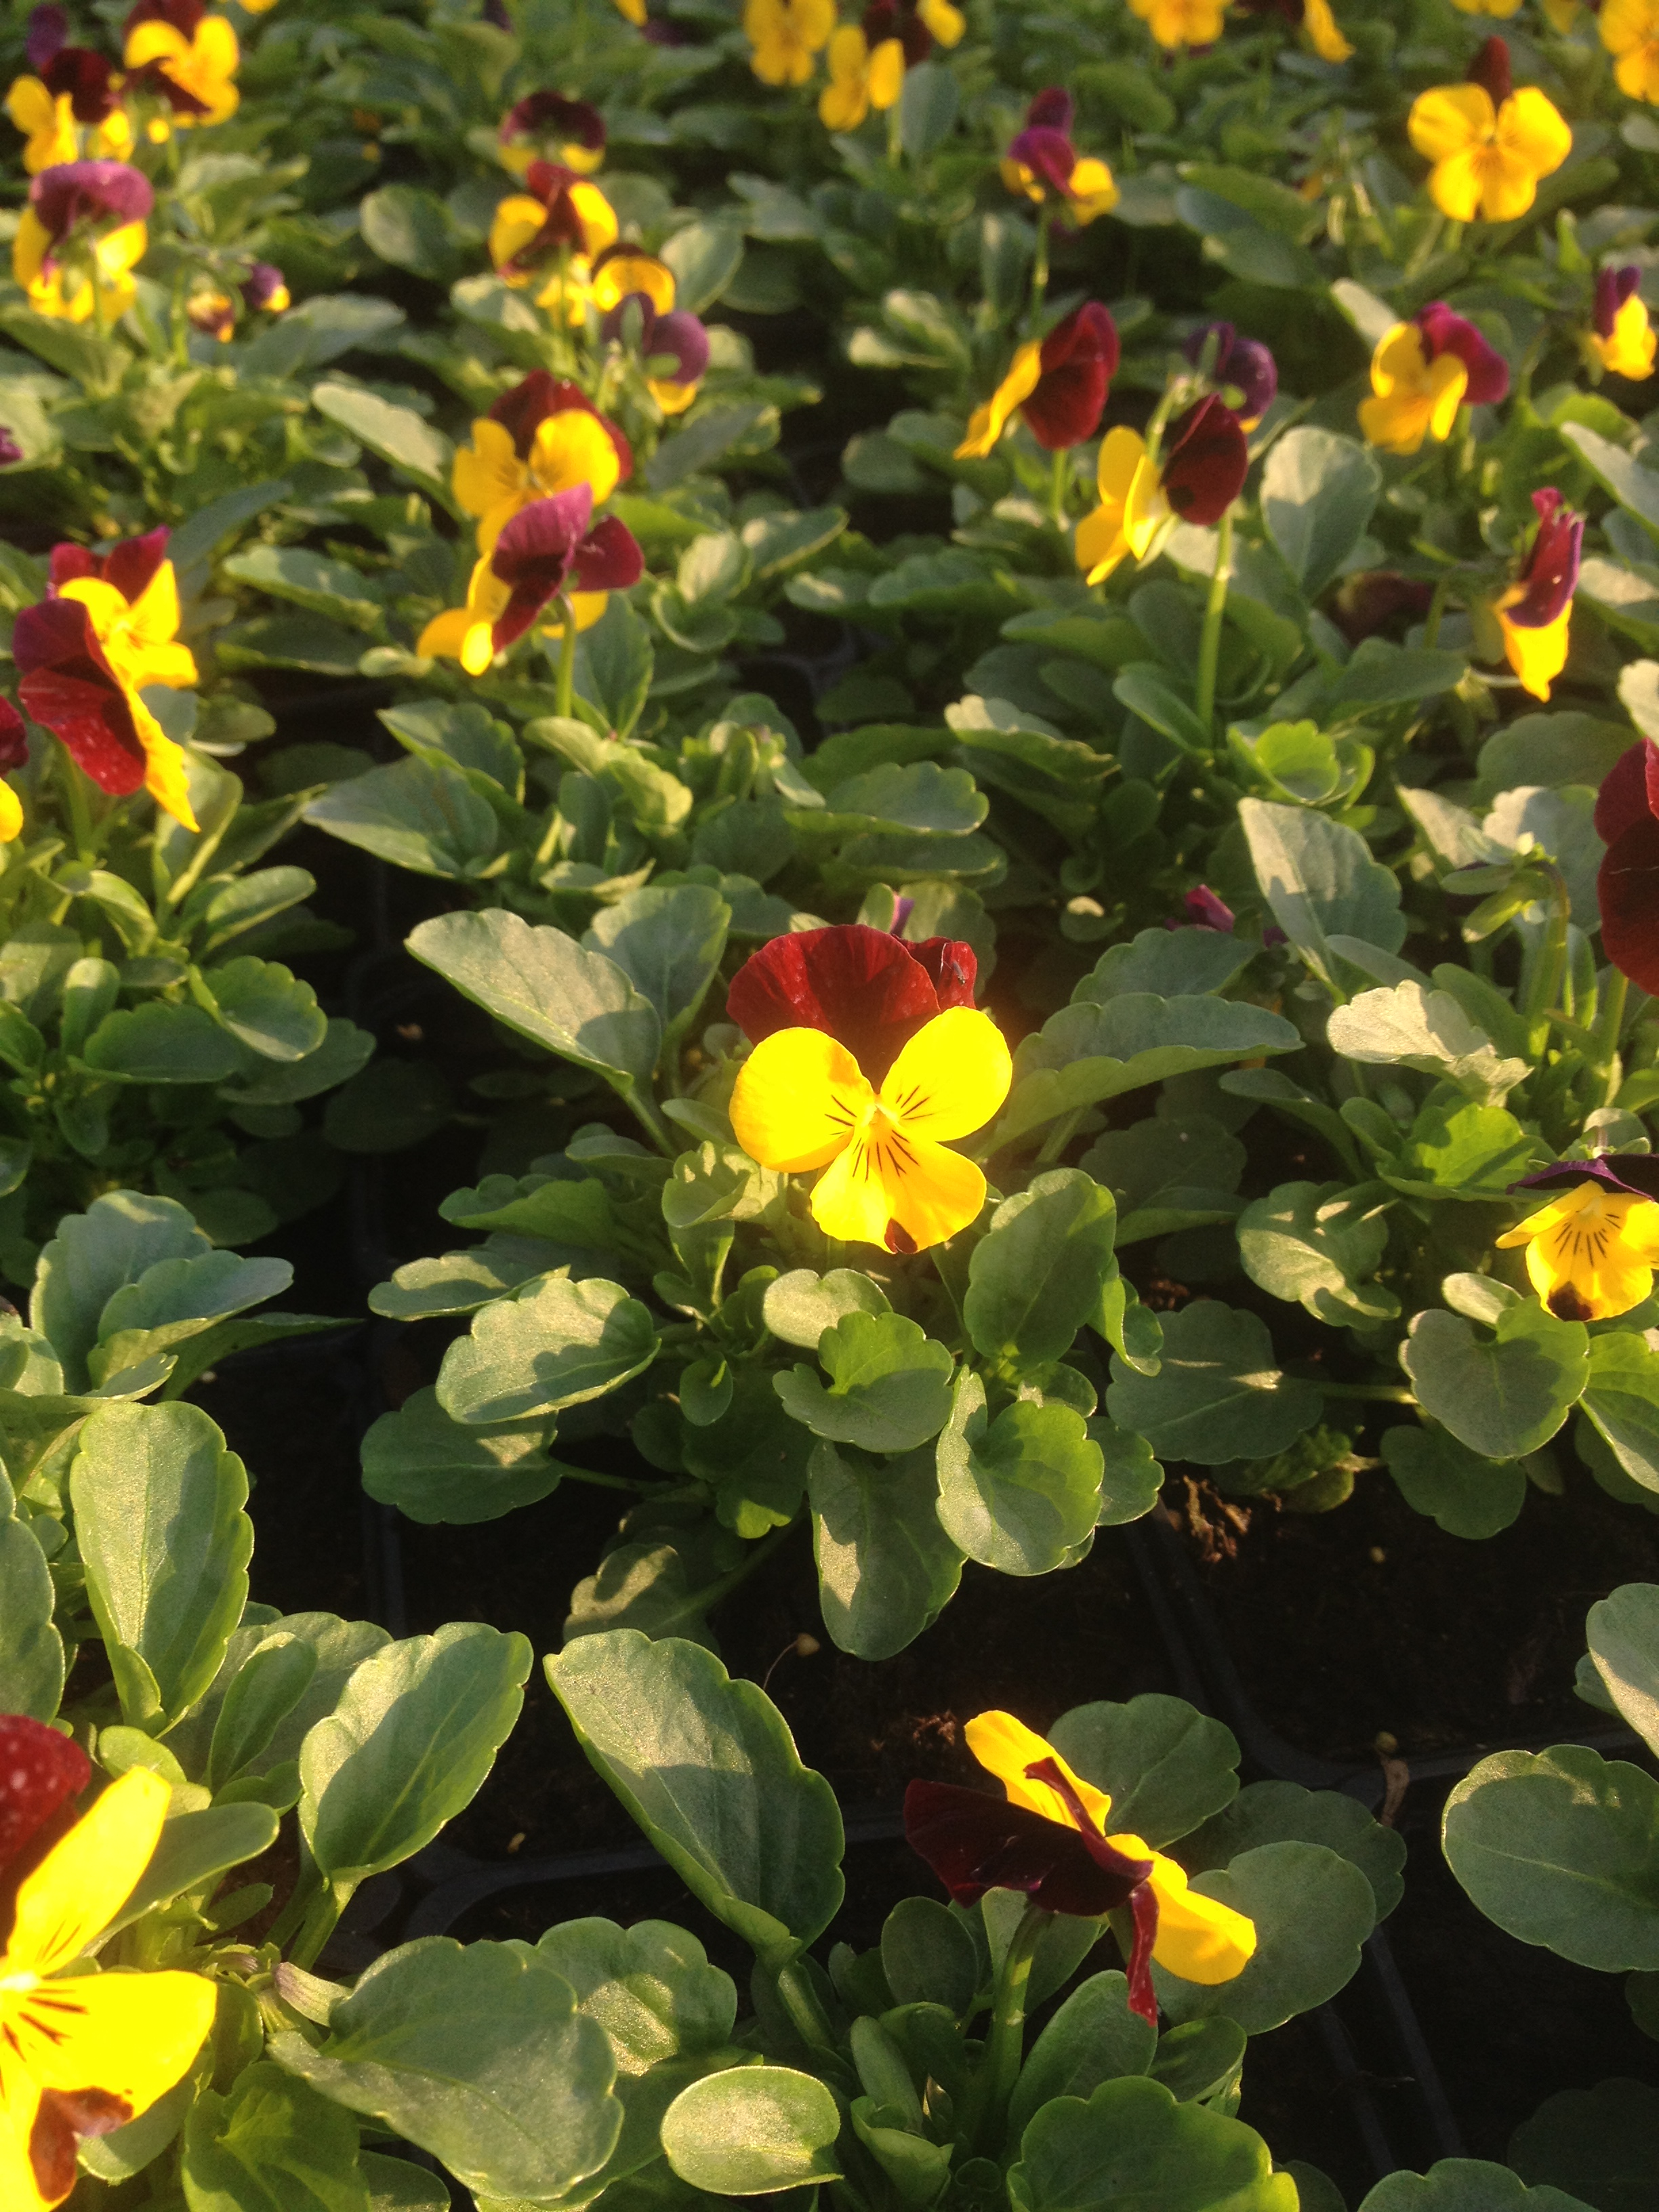 Viola x cornuta ´Twix F1 Yellow red wing´